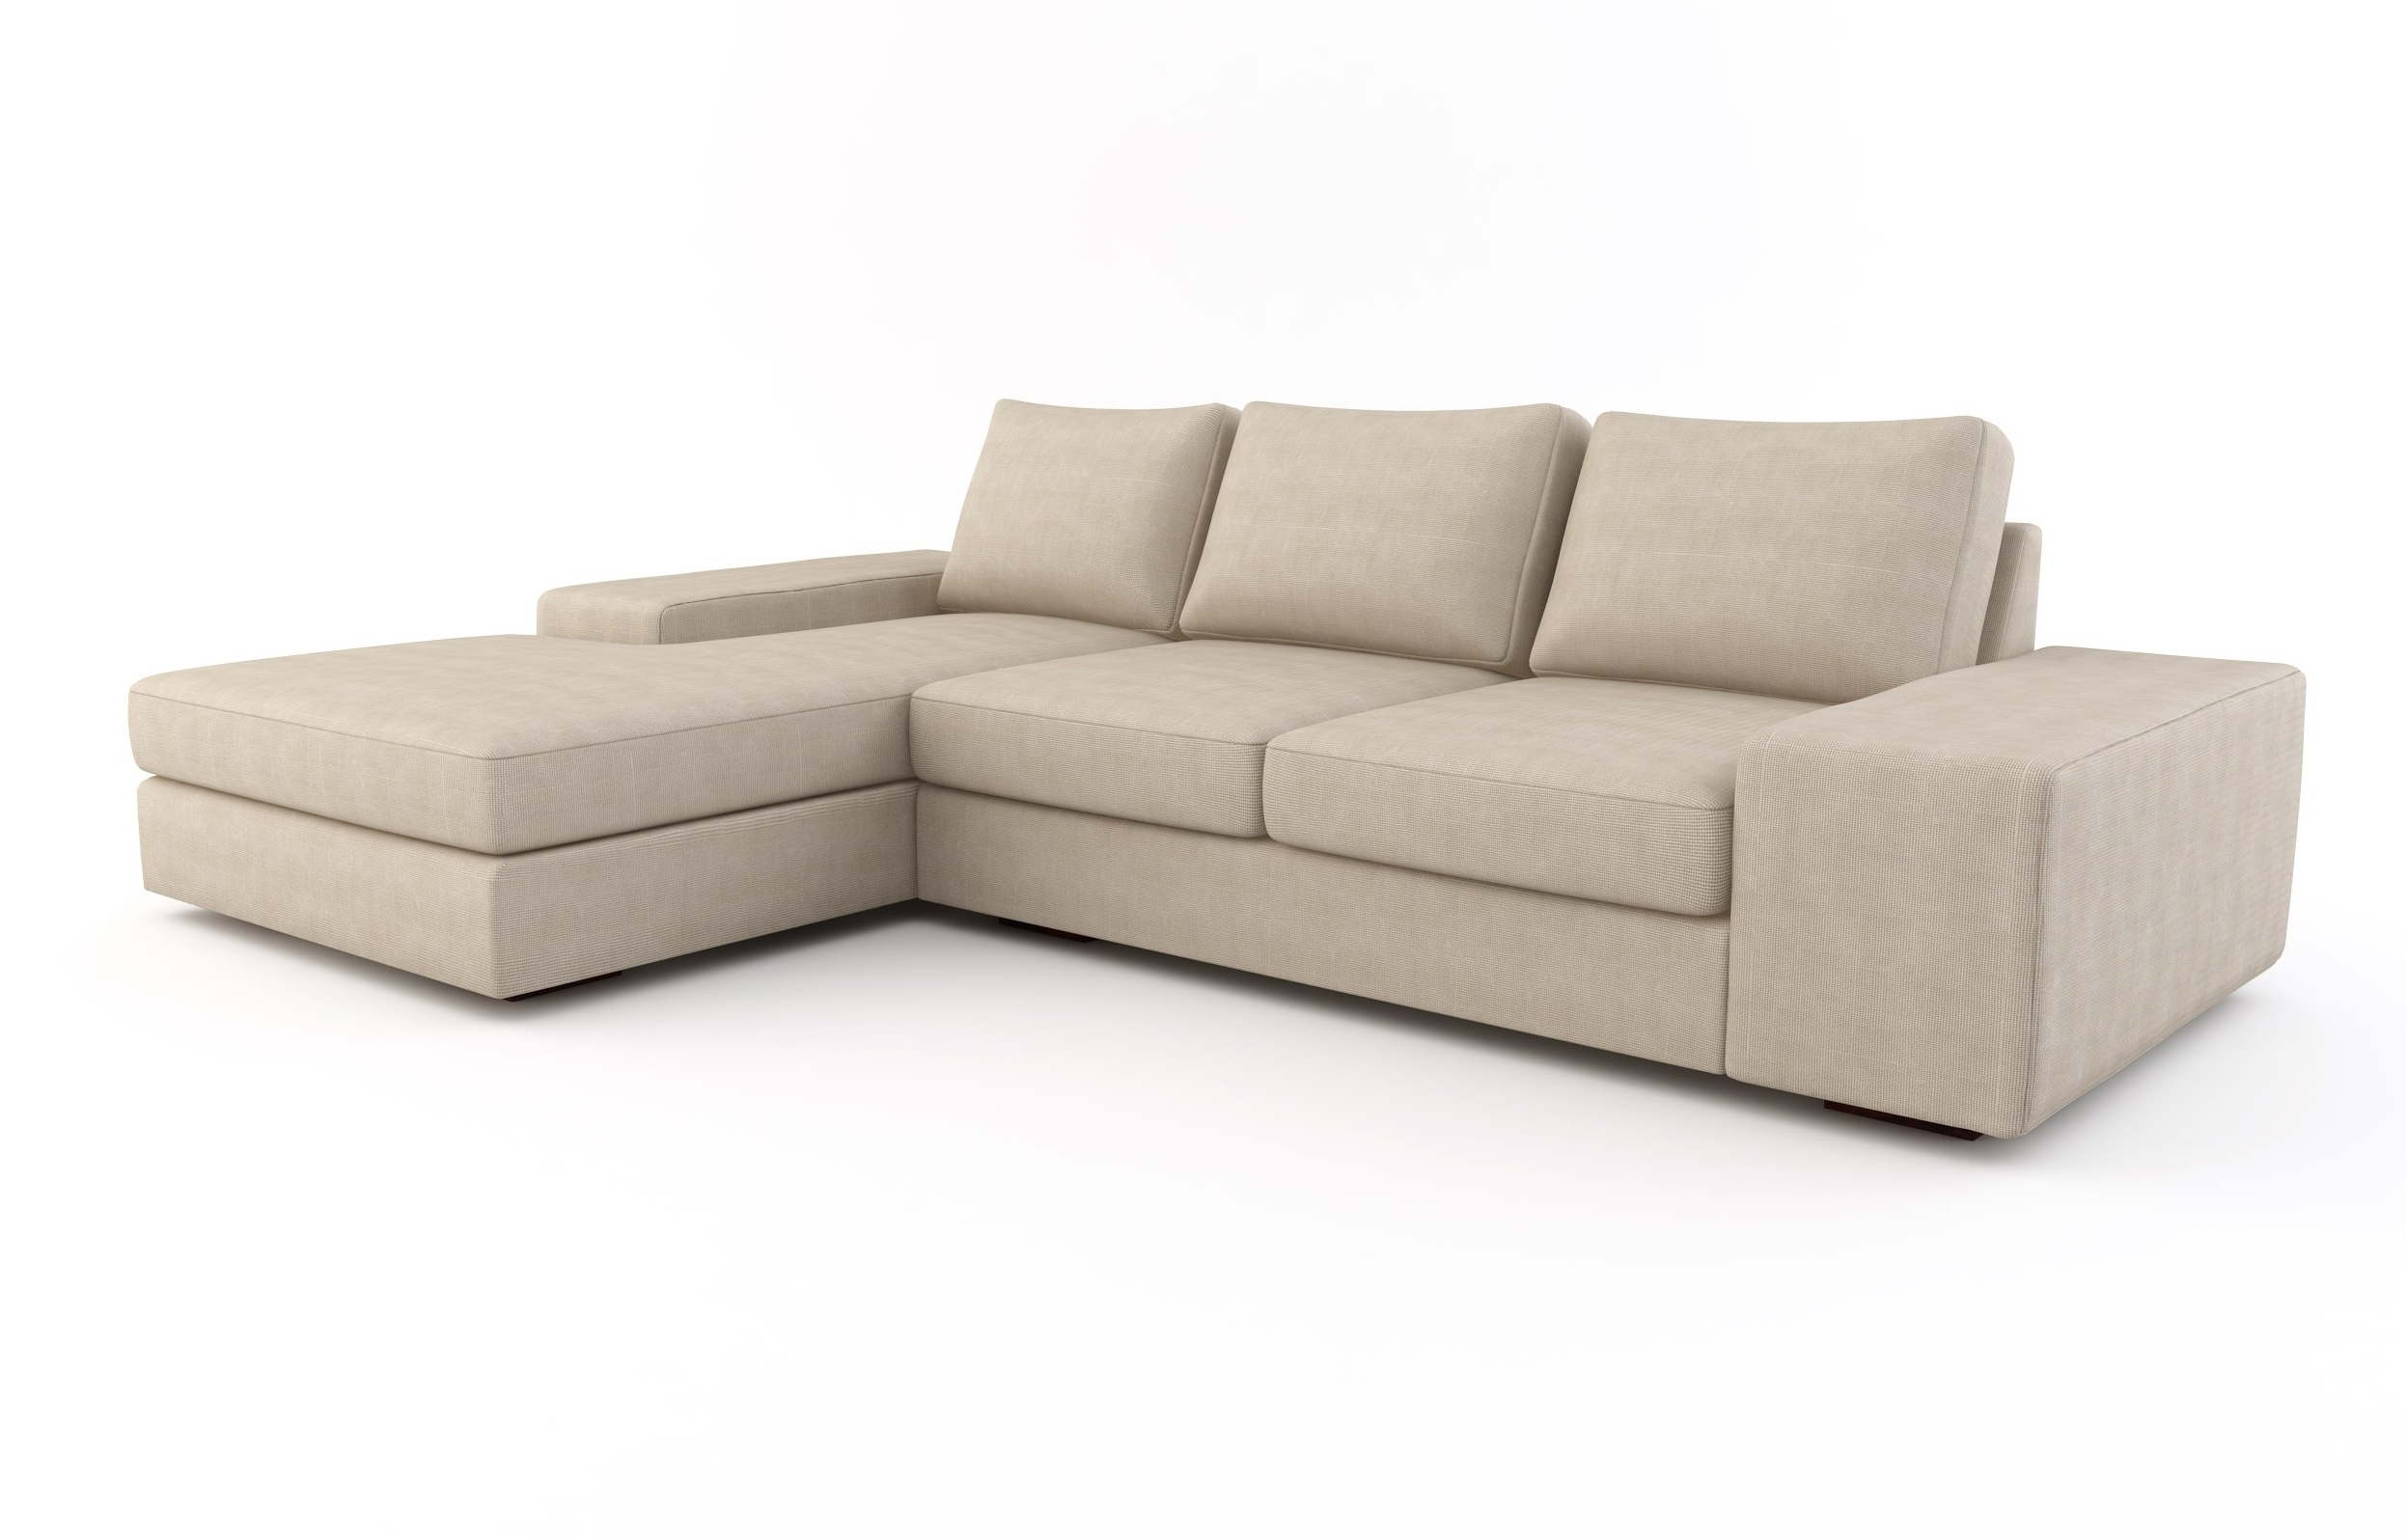 Strata Chaise Sectional W/ Sofa Bed (View 15 of 15)